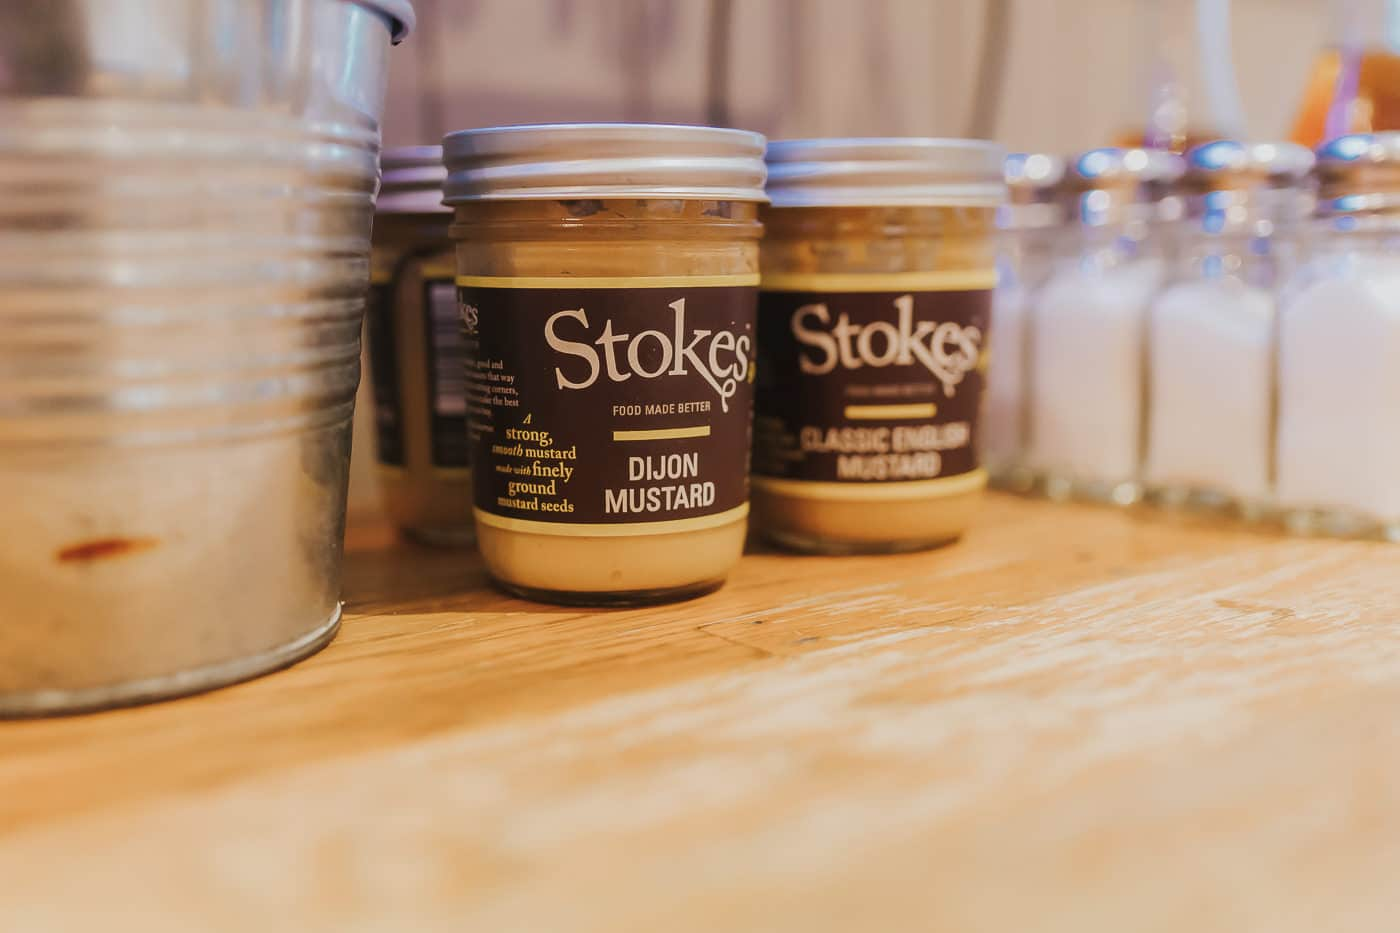 Two jars of mustard on a wooden table